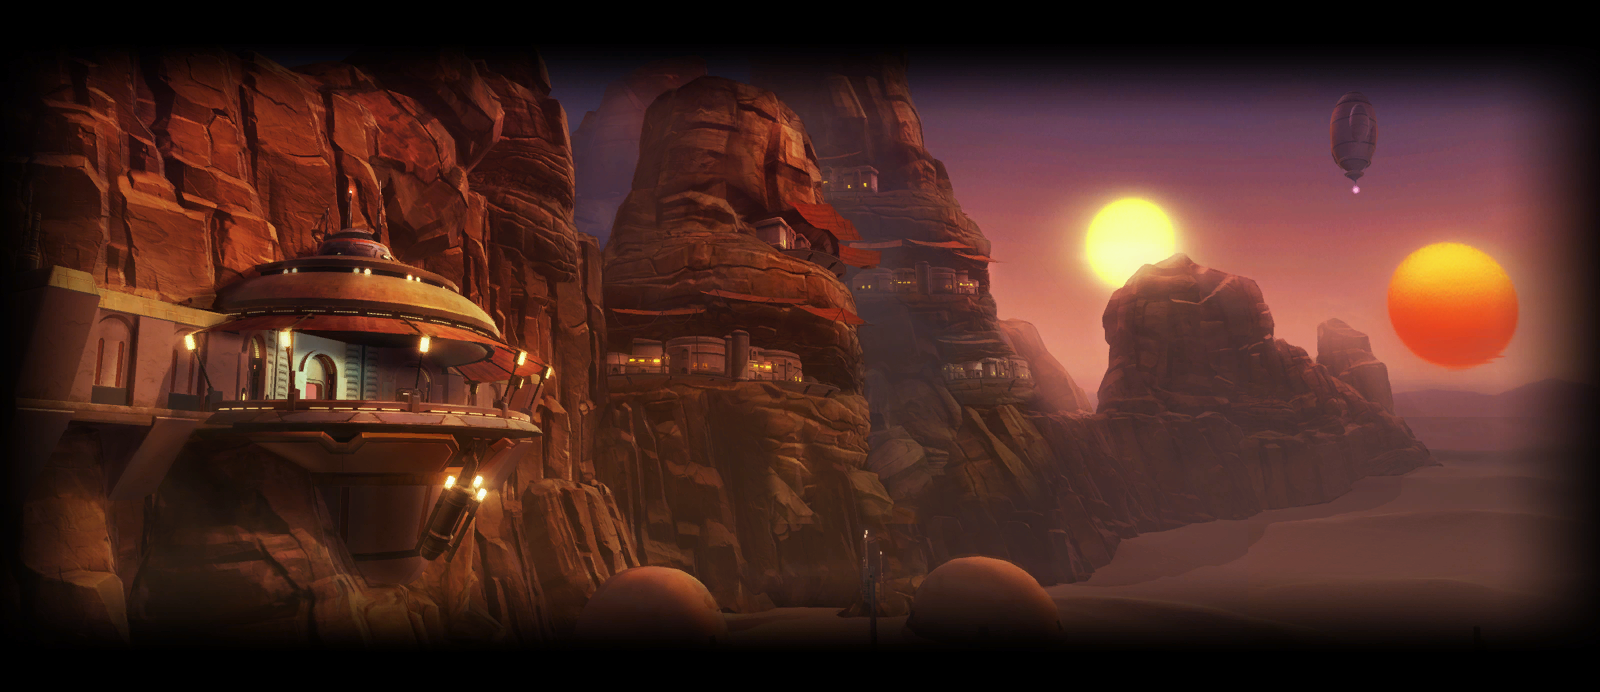 New Loading Screen Images swtor 2